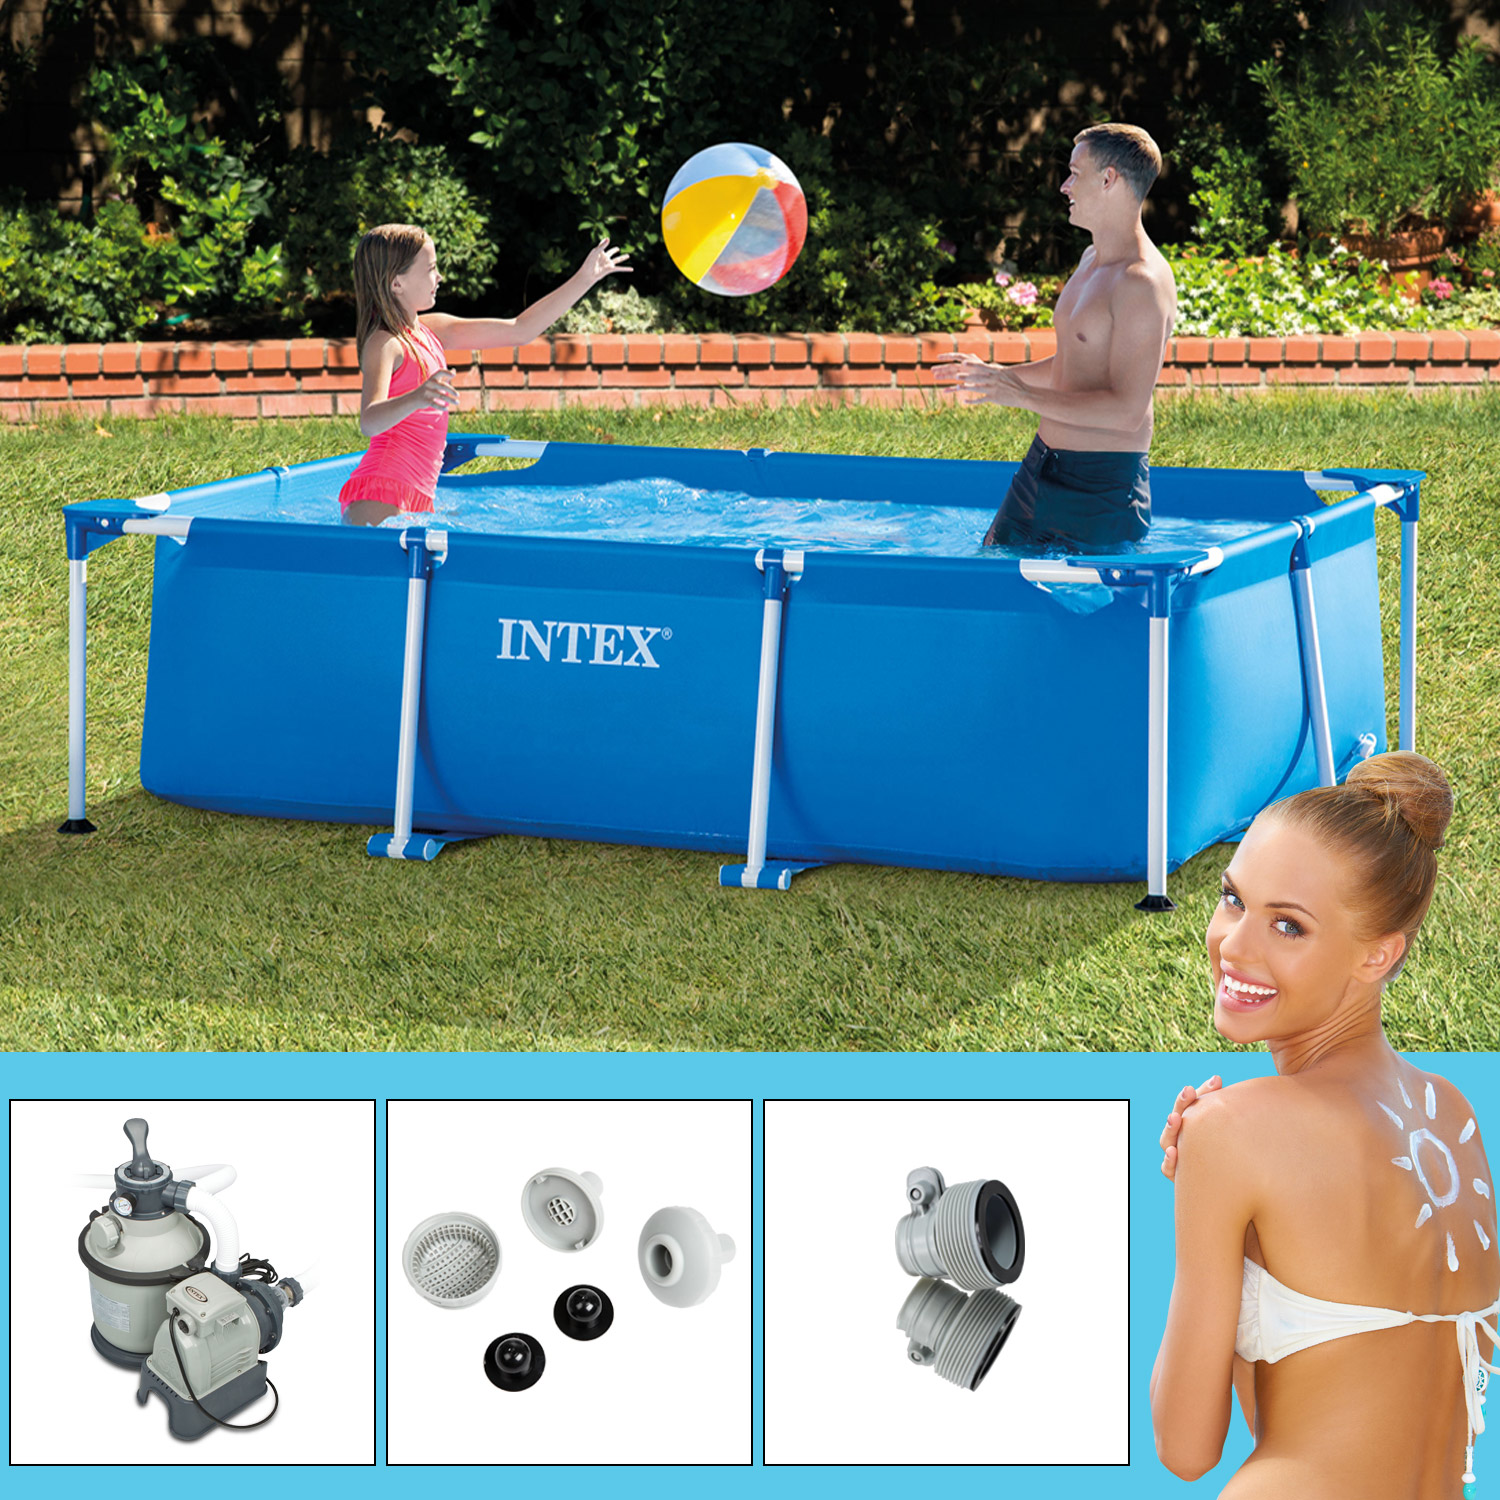 Sandfilteranlage Pool Zeitschaltuhr Intex 300x200x75 Cm Swimming Pool Mit Sandfilter